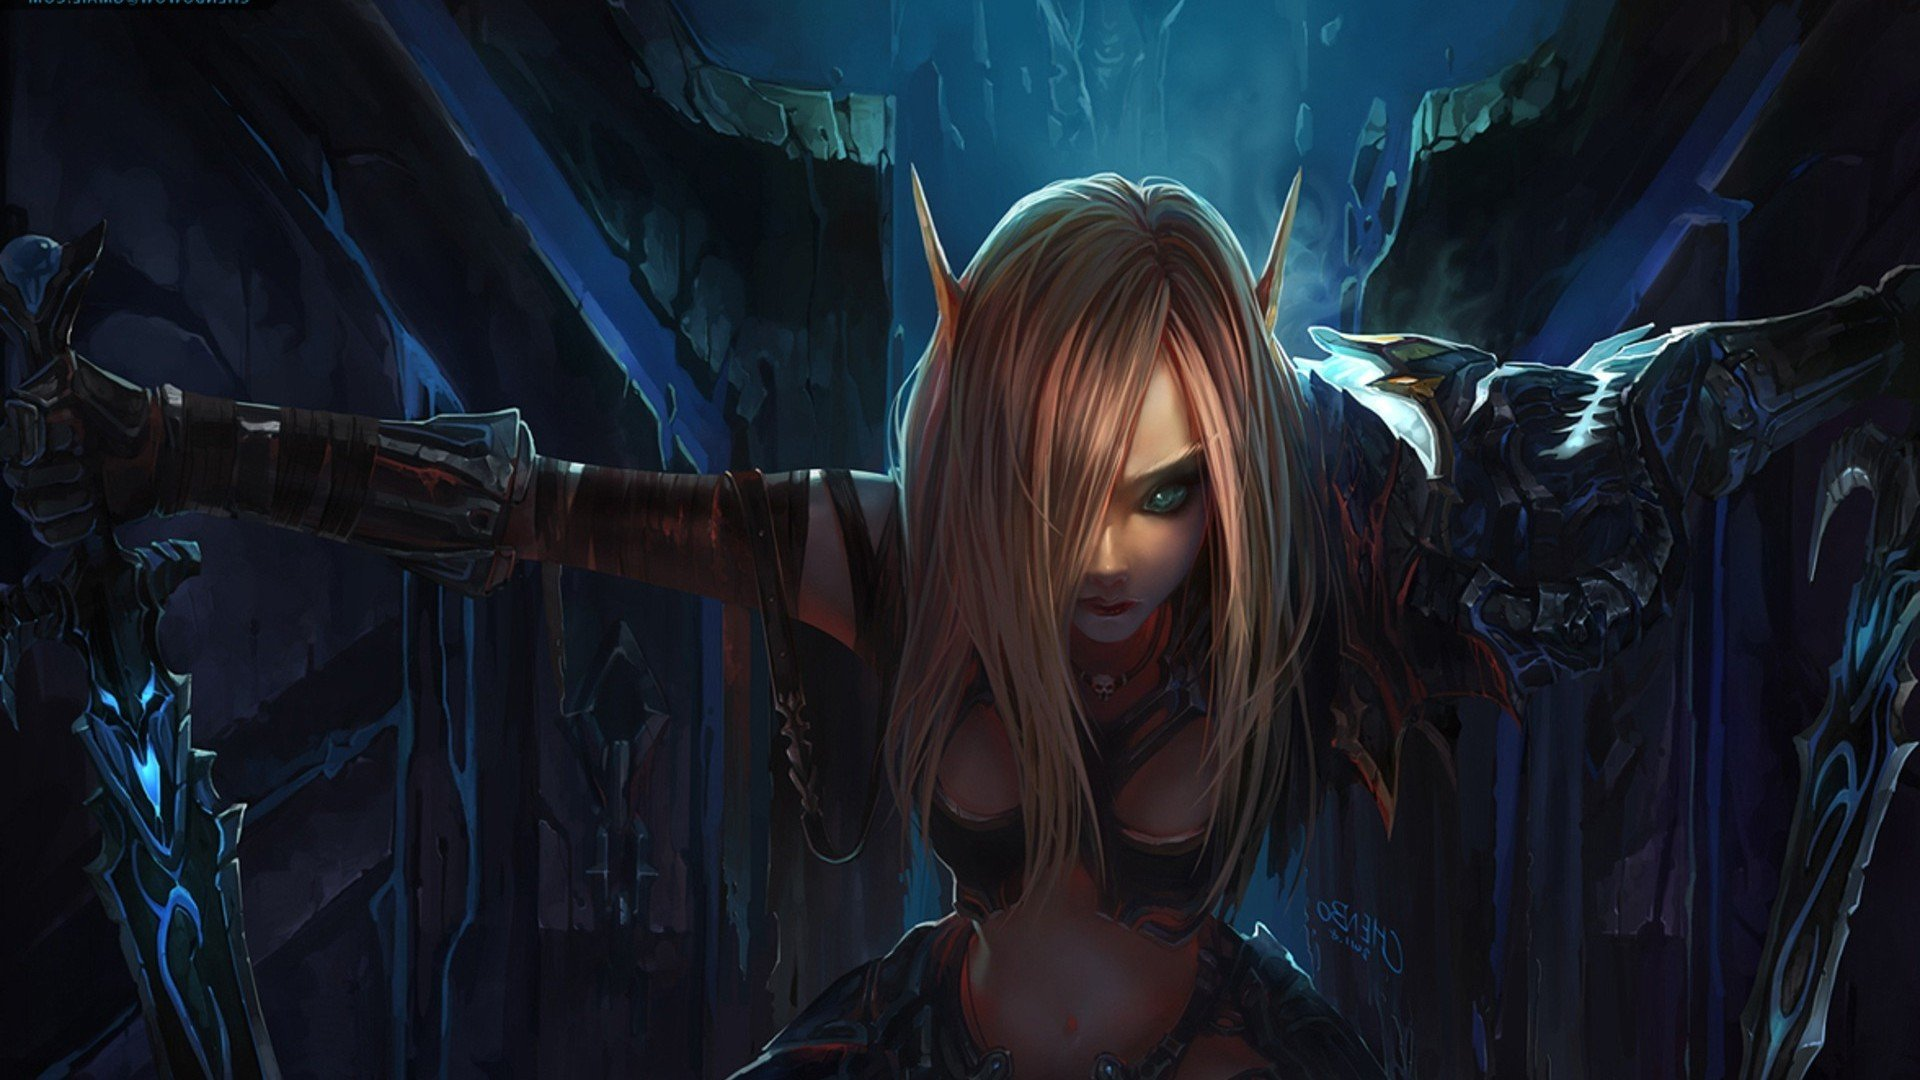 Download 21 Hd Wallpapers 19201080 World Of Warcraft 1920x1080